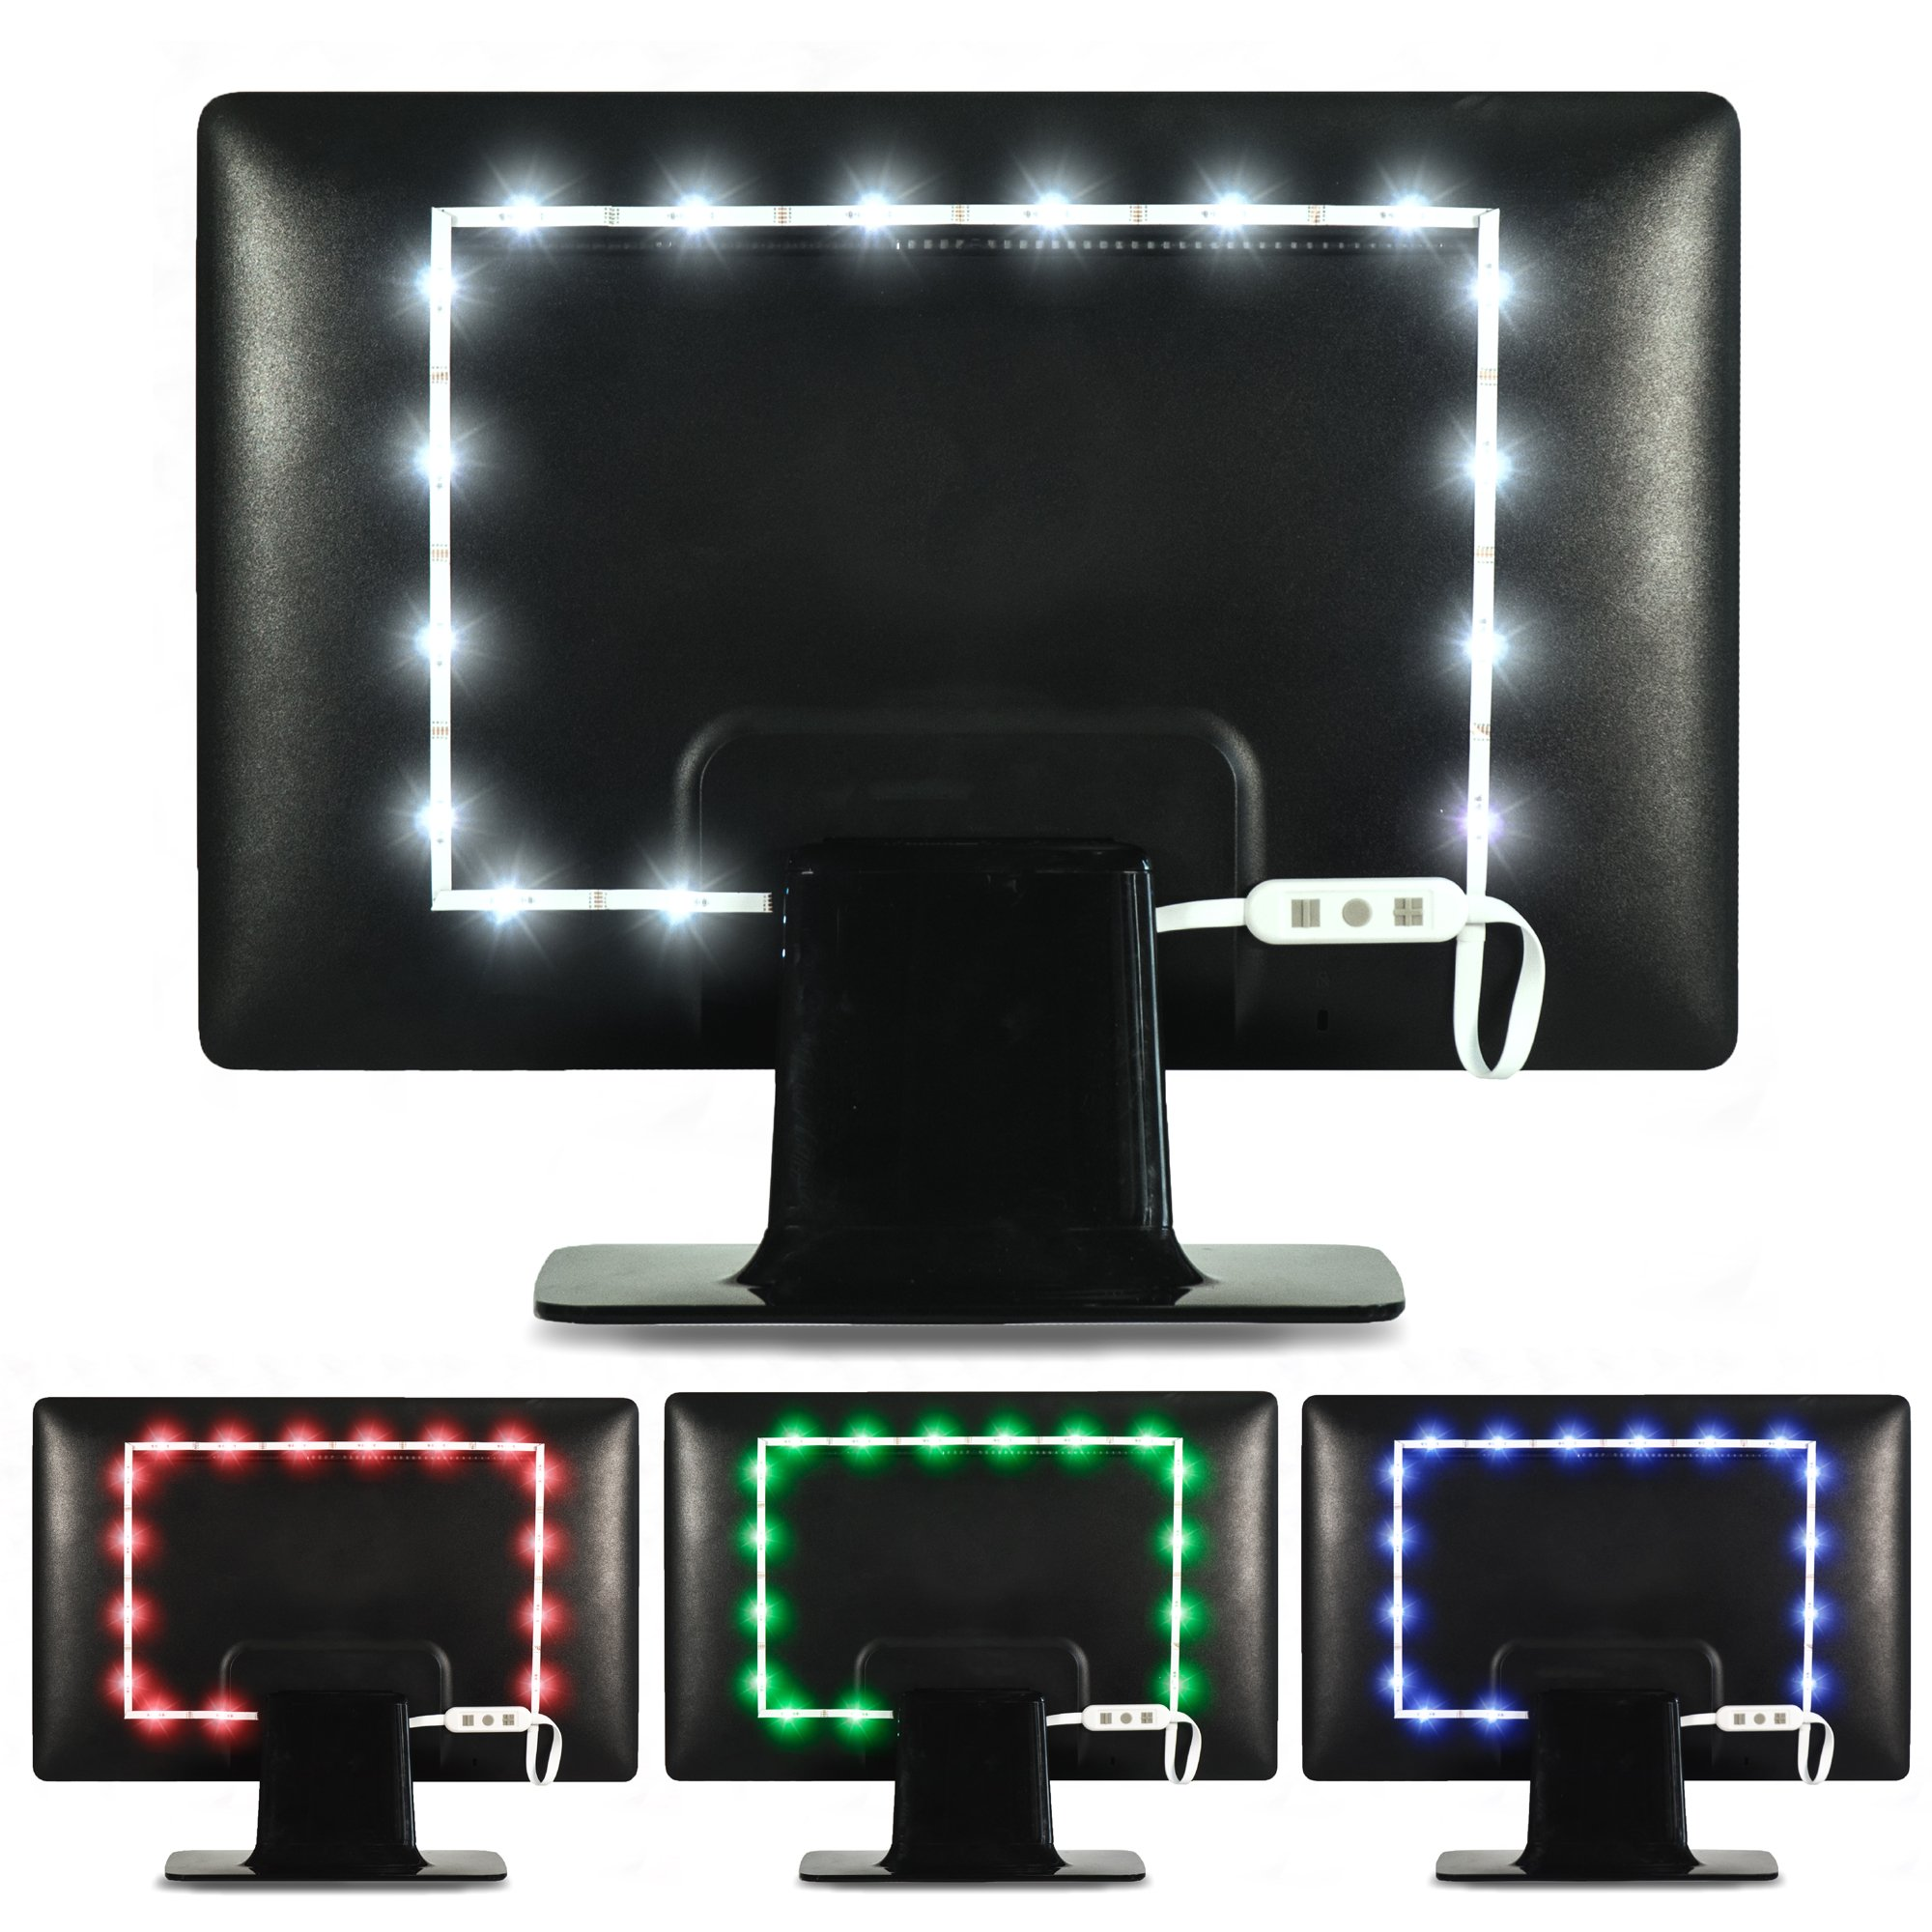 Luminoodle Color Computer Monitor Backlight - 15 Color Bias Lighting with Remote - 3.3 ft for Monitors up to 24'' - LED USB Powered TV Light, RGB Strip - Small